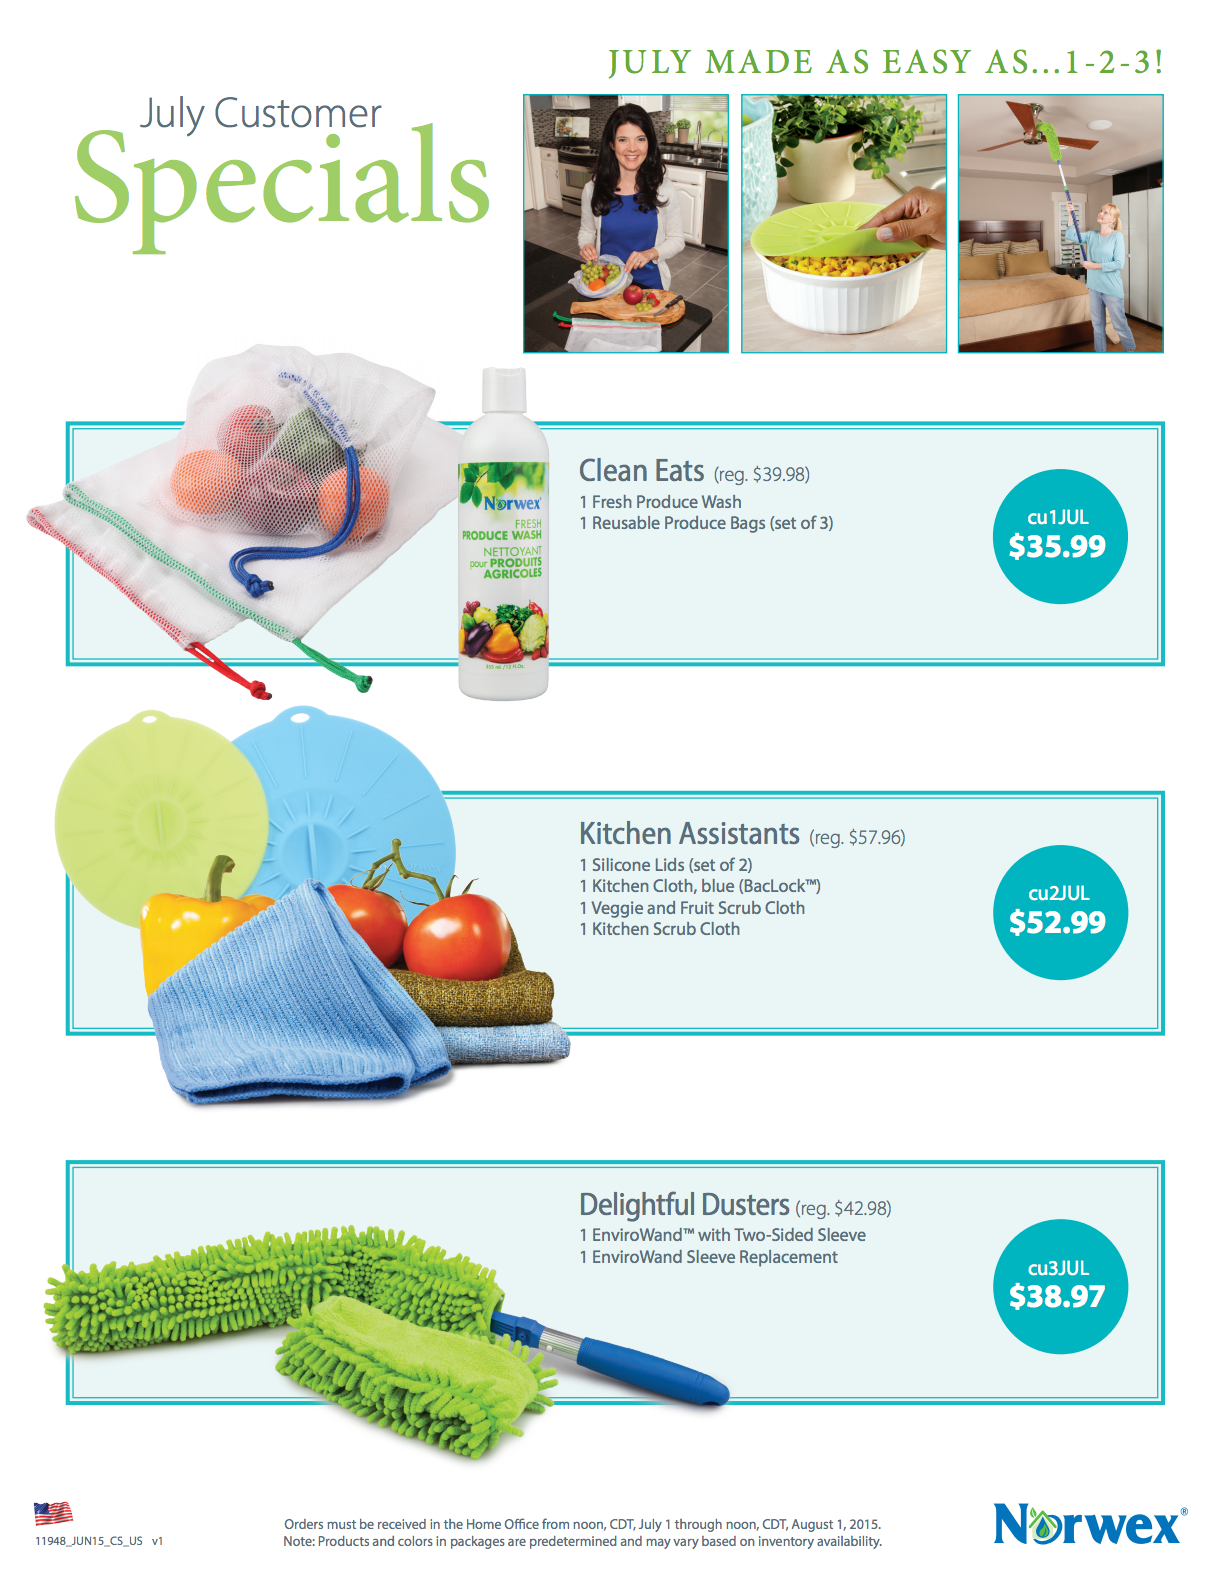 July Norwex Hostess Gifts And Customer Specials Work